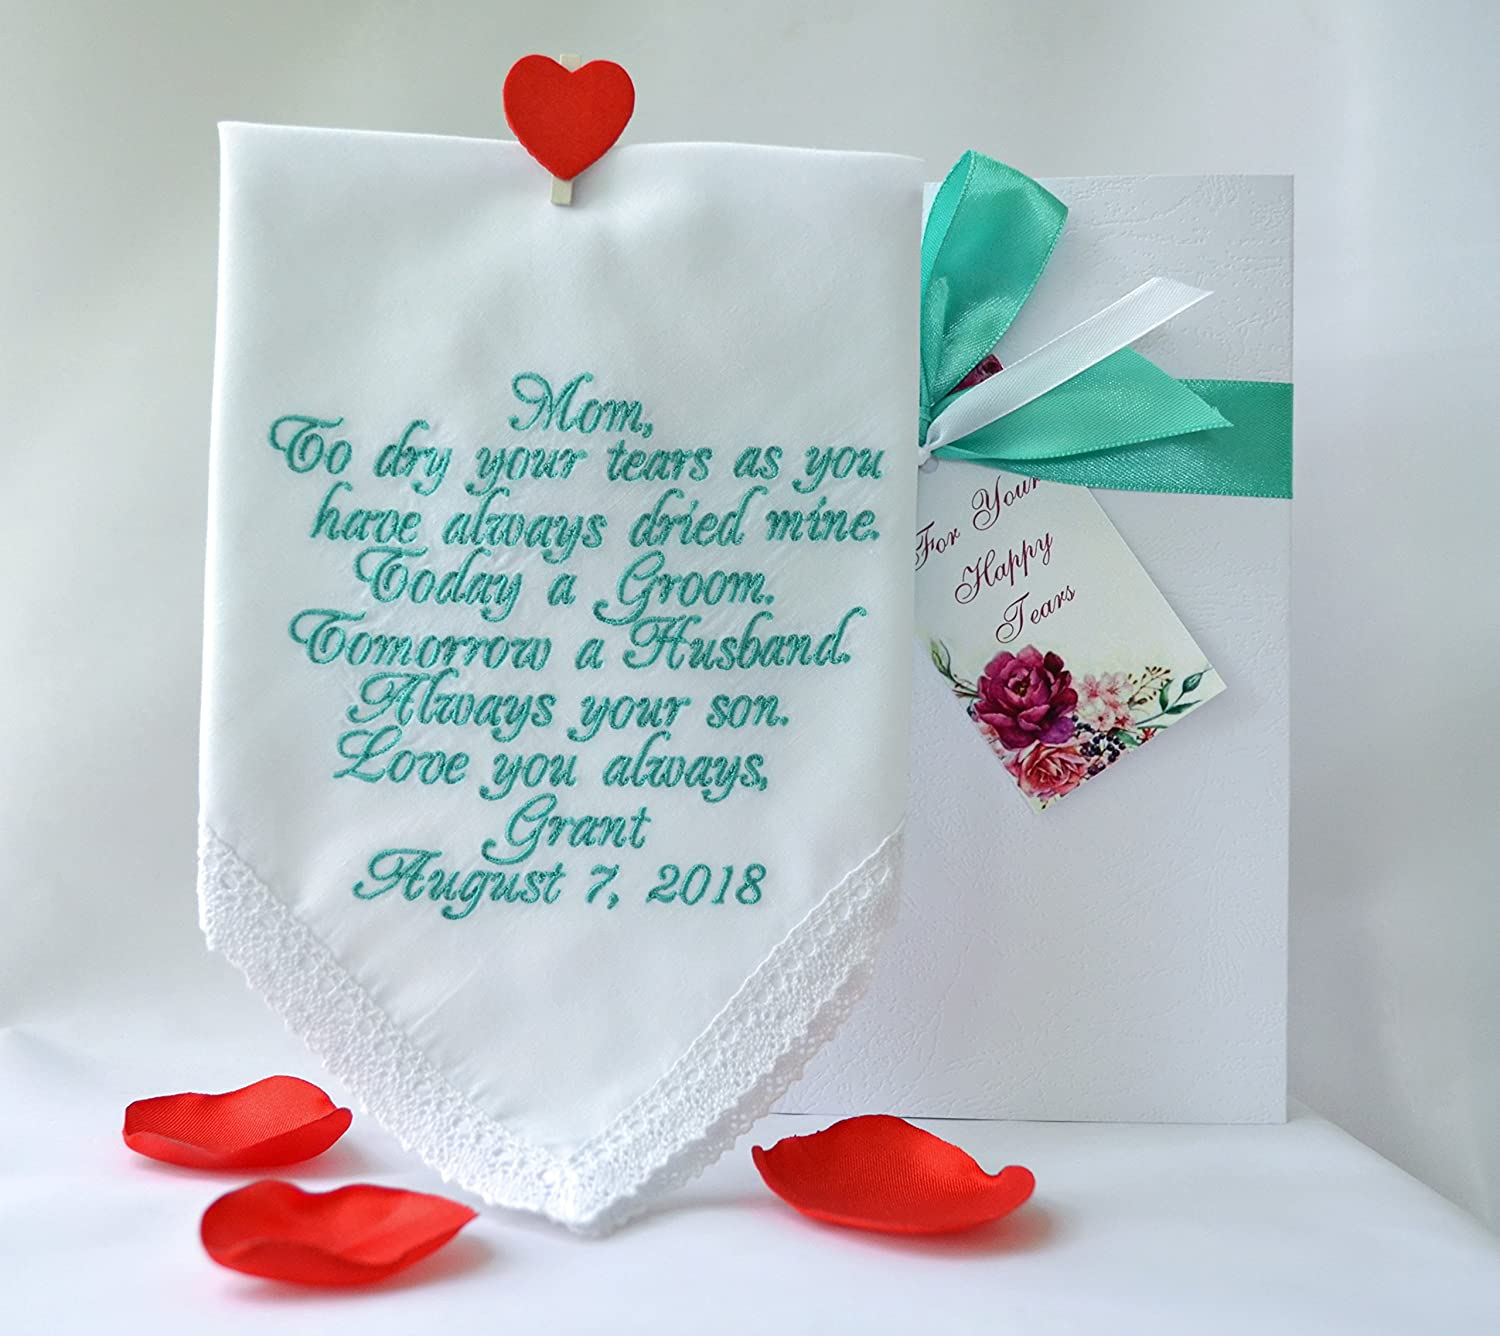 Wedding gift for Mom from son Mother of the Groom handkerchief Wedding keepsake Personalized hankies Embroidered hankie Wedding favours Custom hankies Mother son gift